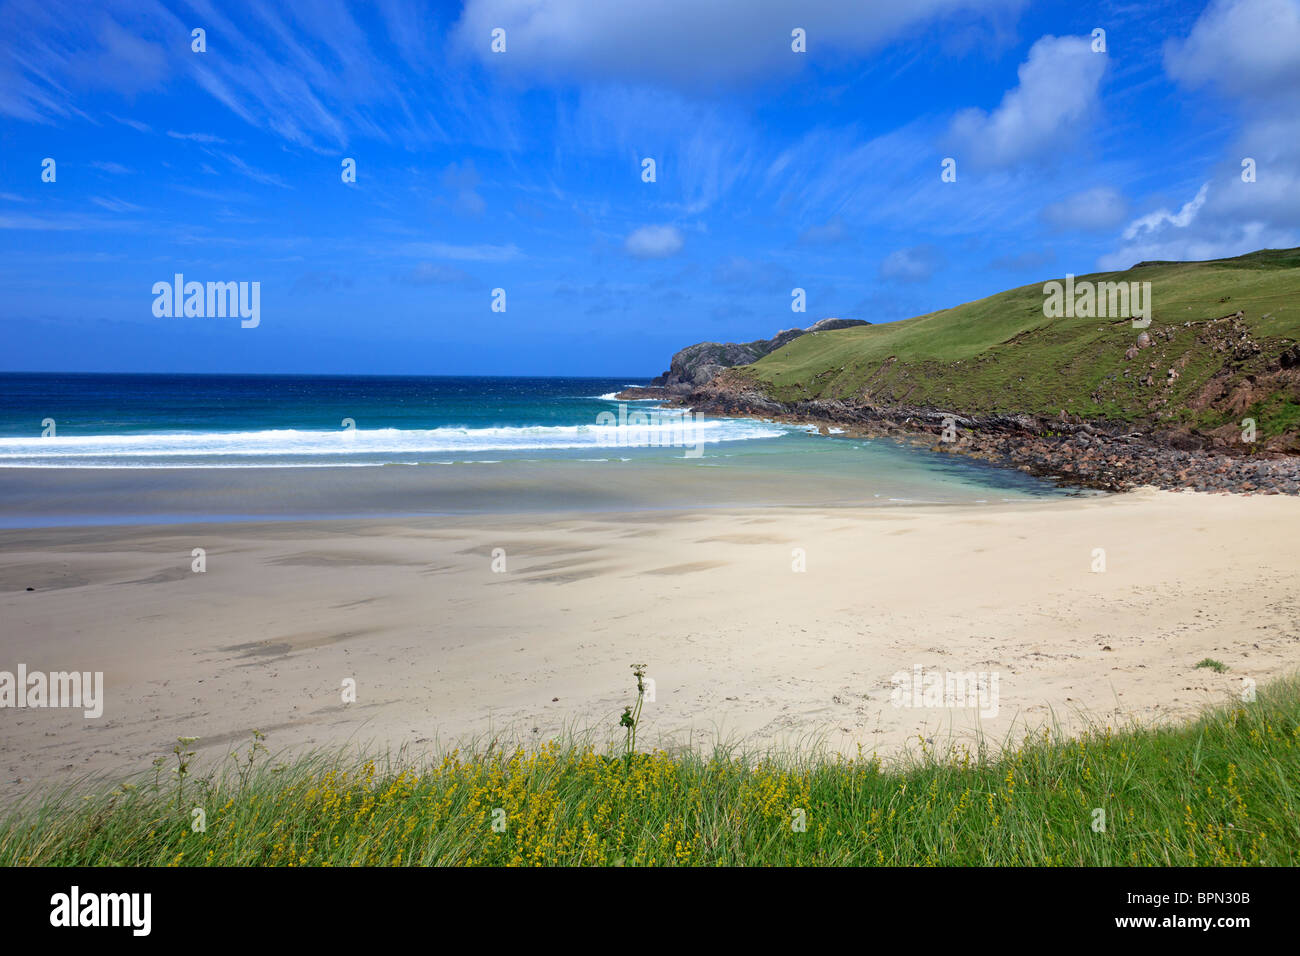 Cliff beach, Isle of Lewis, Outer Hebrides, Scotland - Stock Image